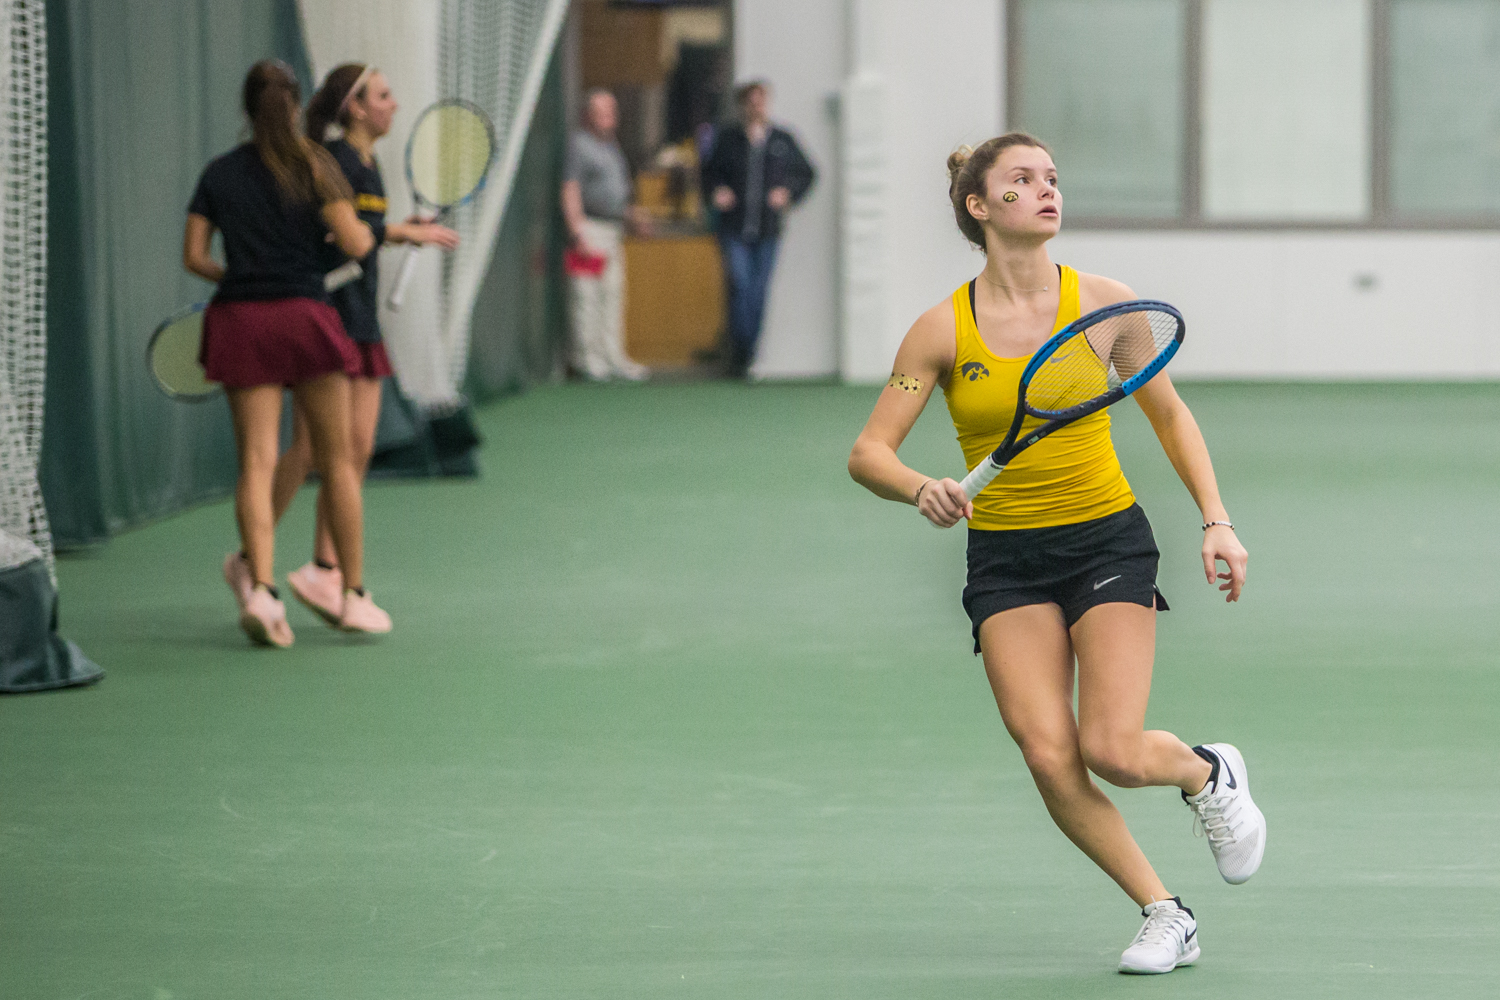 Iowa%27s+Cloe+Ruette+watches+the+ball+during+a+women%27s+tennis+matchup+between+Iowa+and+Iowa+State+at+the+Hawkeye+Tennis+and+Recreation+Complex+on+Friday%2C+February+8%2C+2019.++The+Hawkeyes+dropped+the+doubles+point+but+swept+singles+matches%2C+defeating+the+Cyclones+4-1.